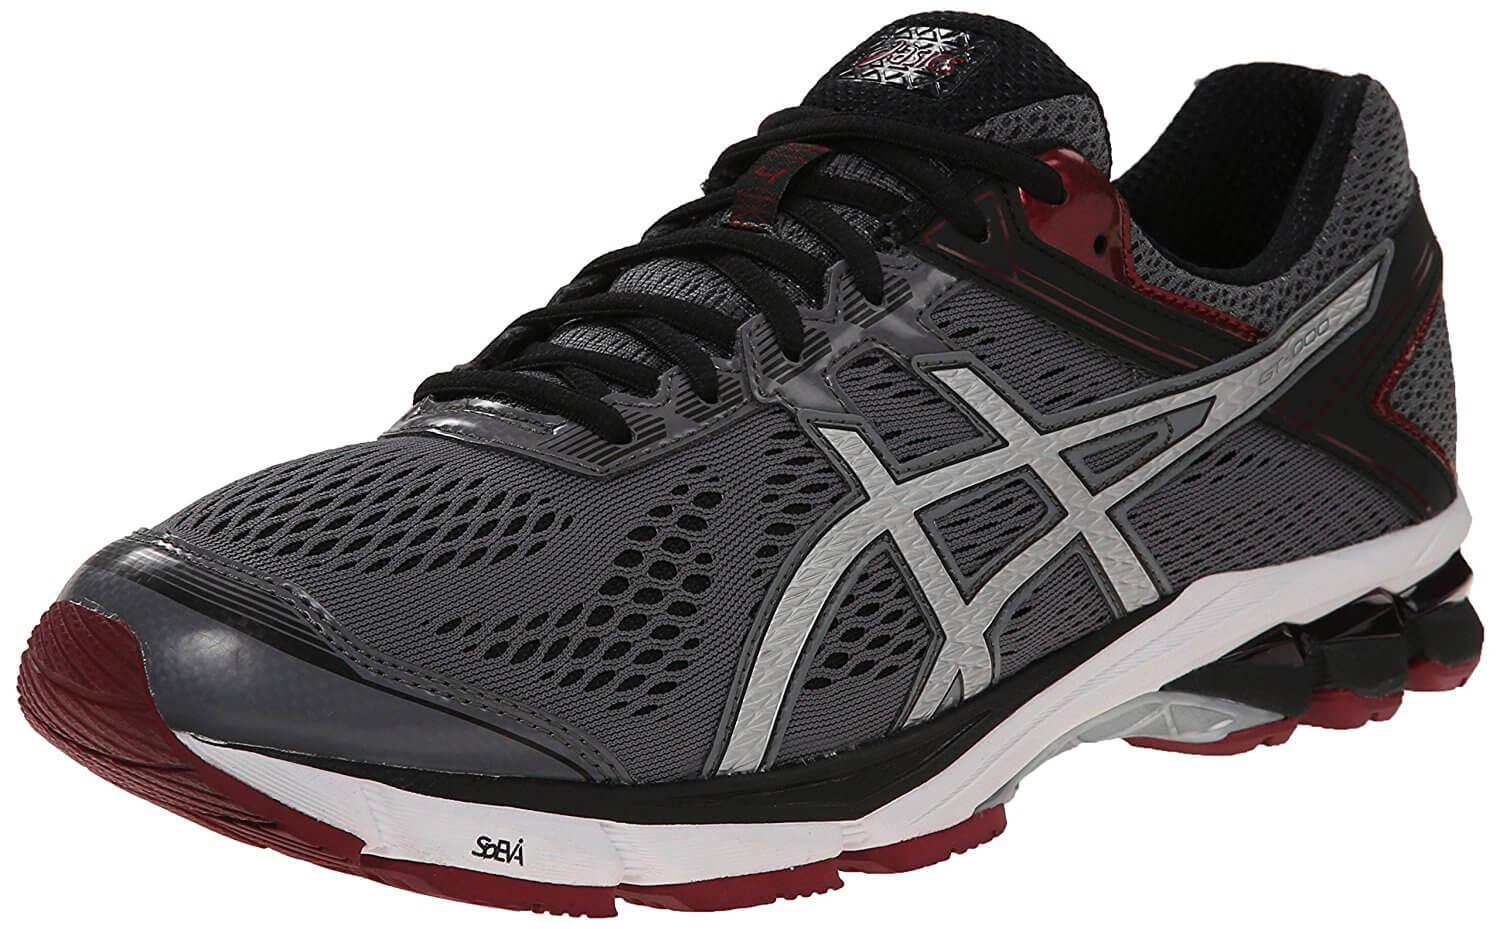 Asics GT 1000 4 Reviewed for Performance & Quality 1